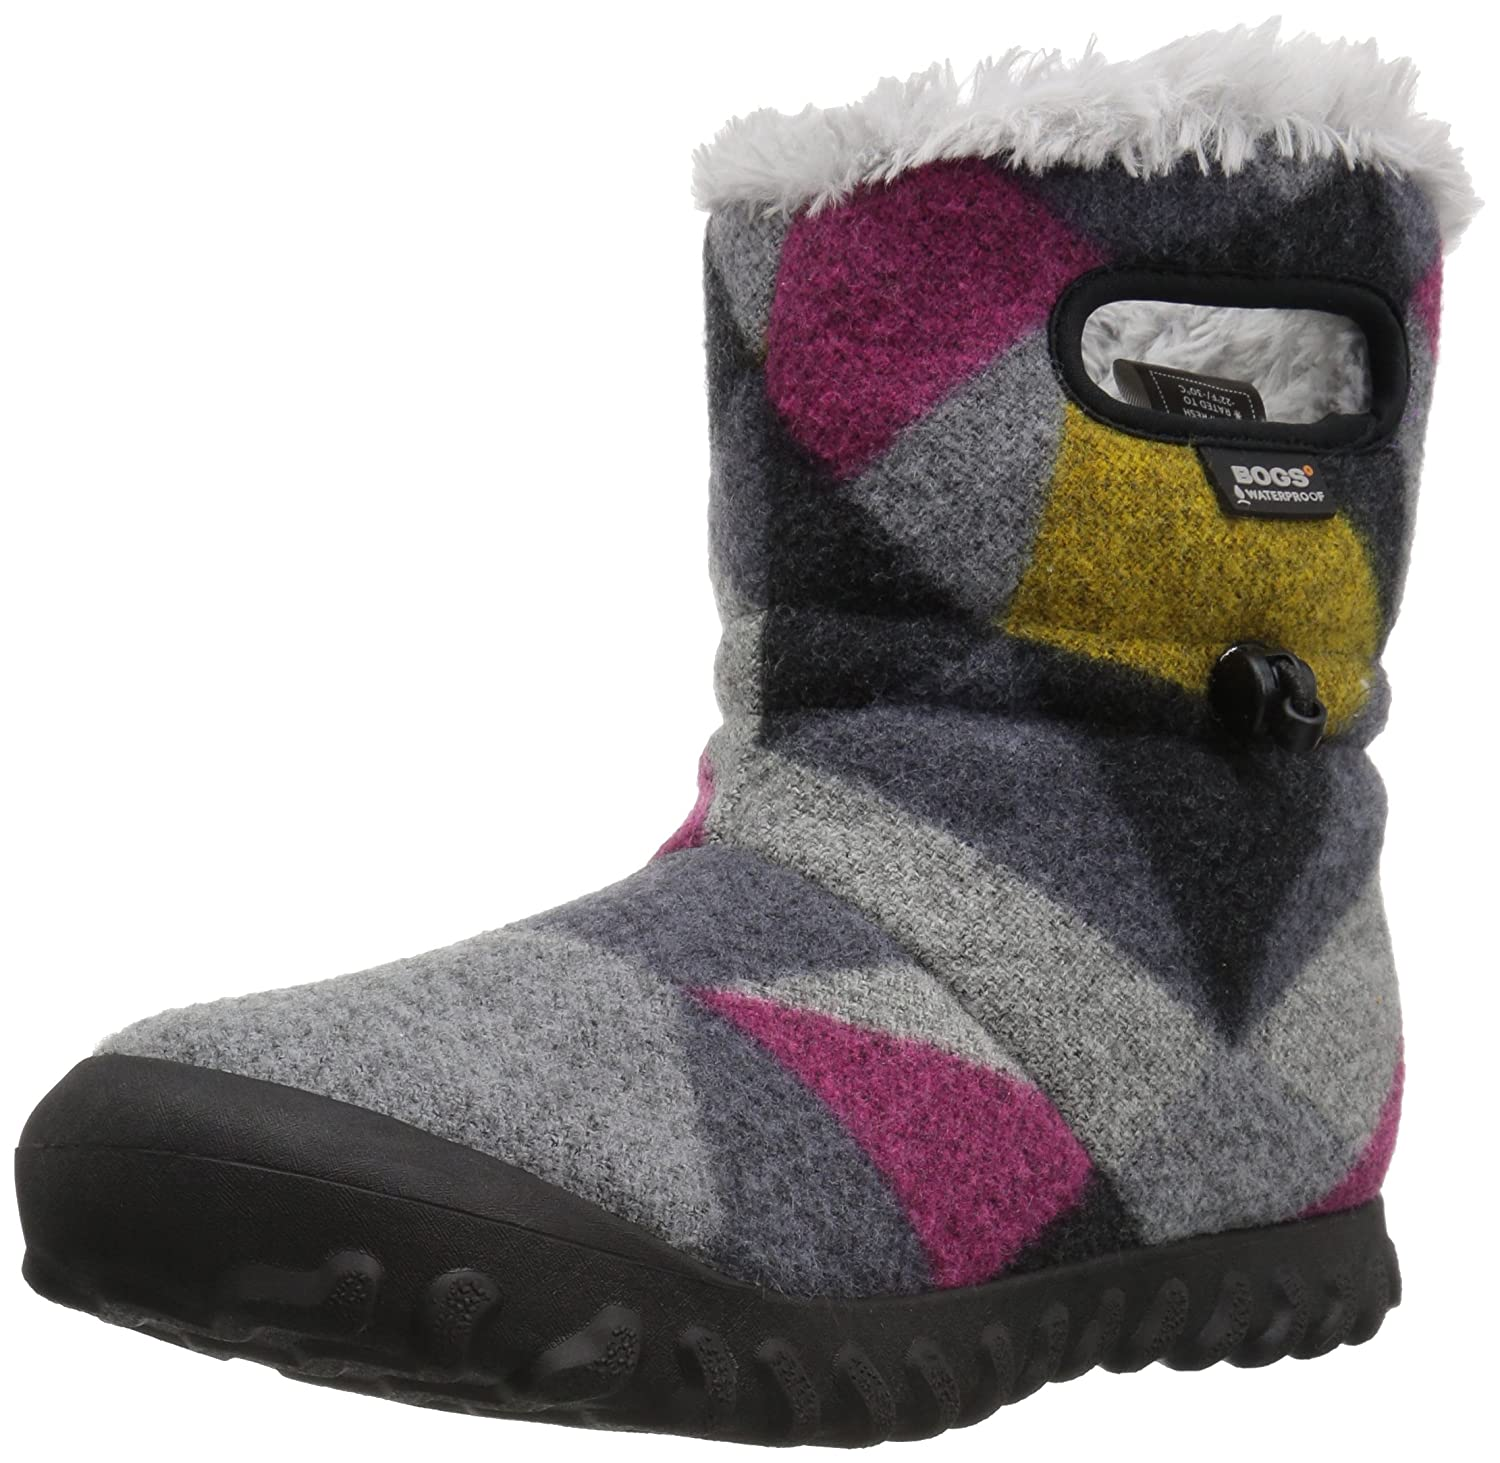 Bogs Women's Bmoc Wool Snow Boot B01MTT3XGX 6 B(M) US|Dark Gray/Gold